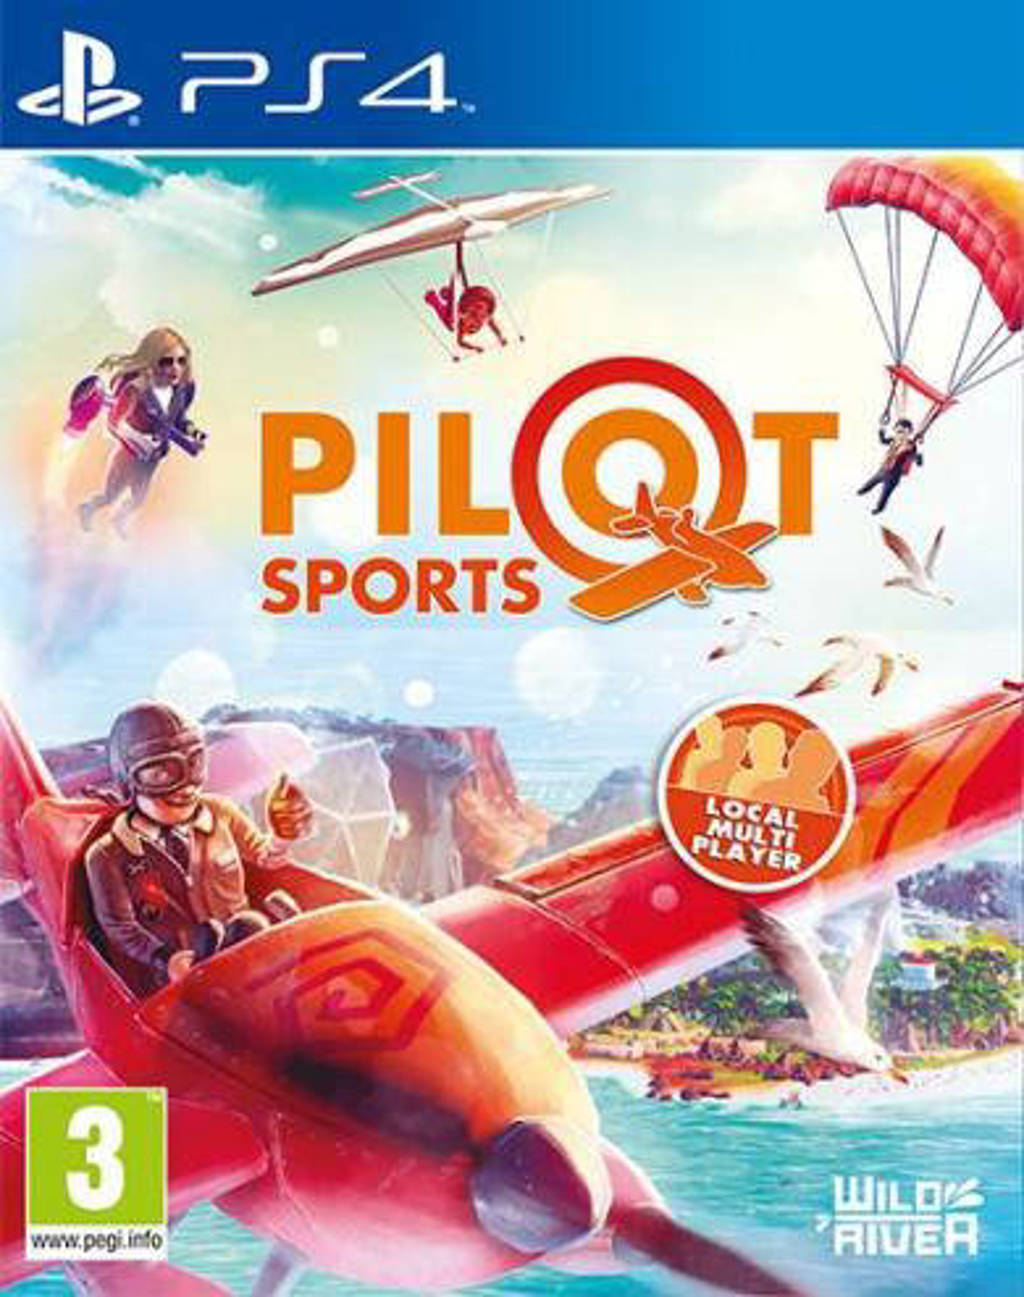 Pilot sports (PlayStation 4)